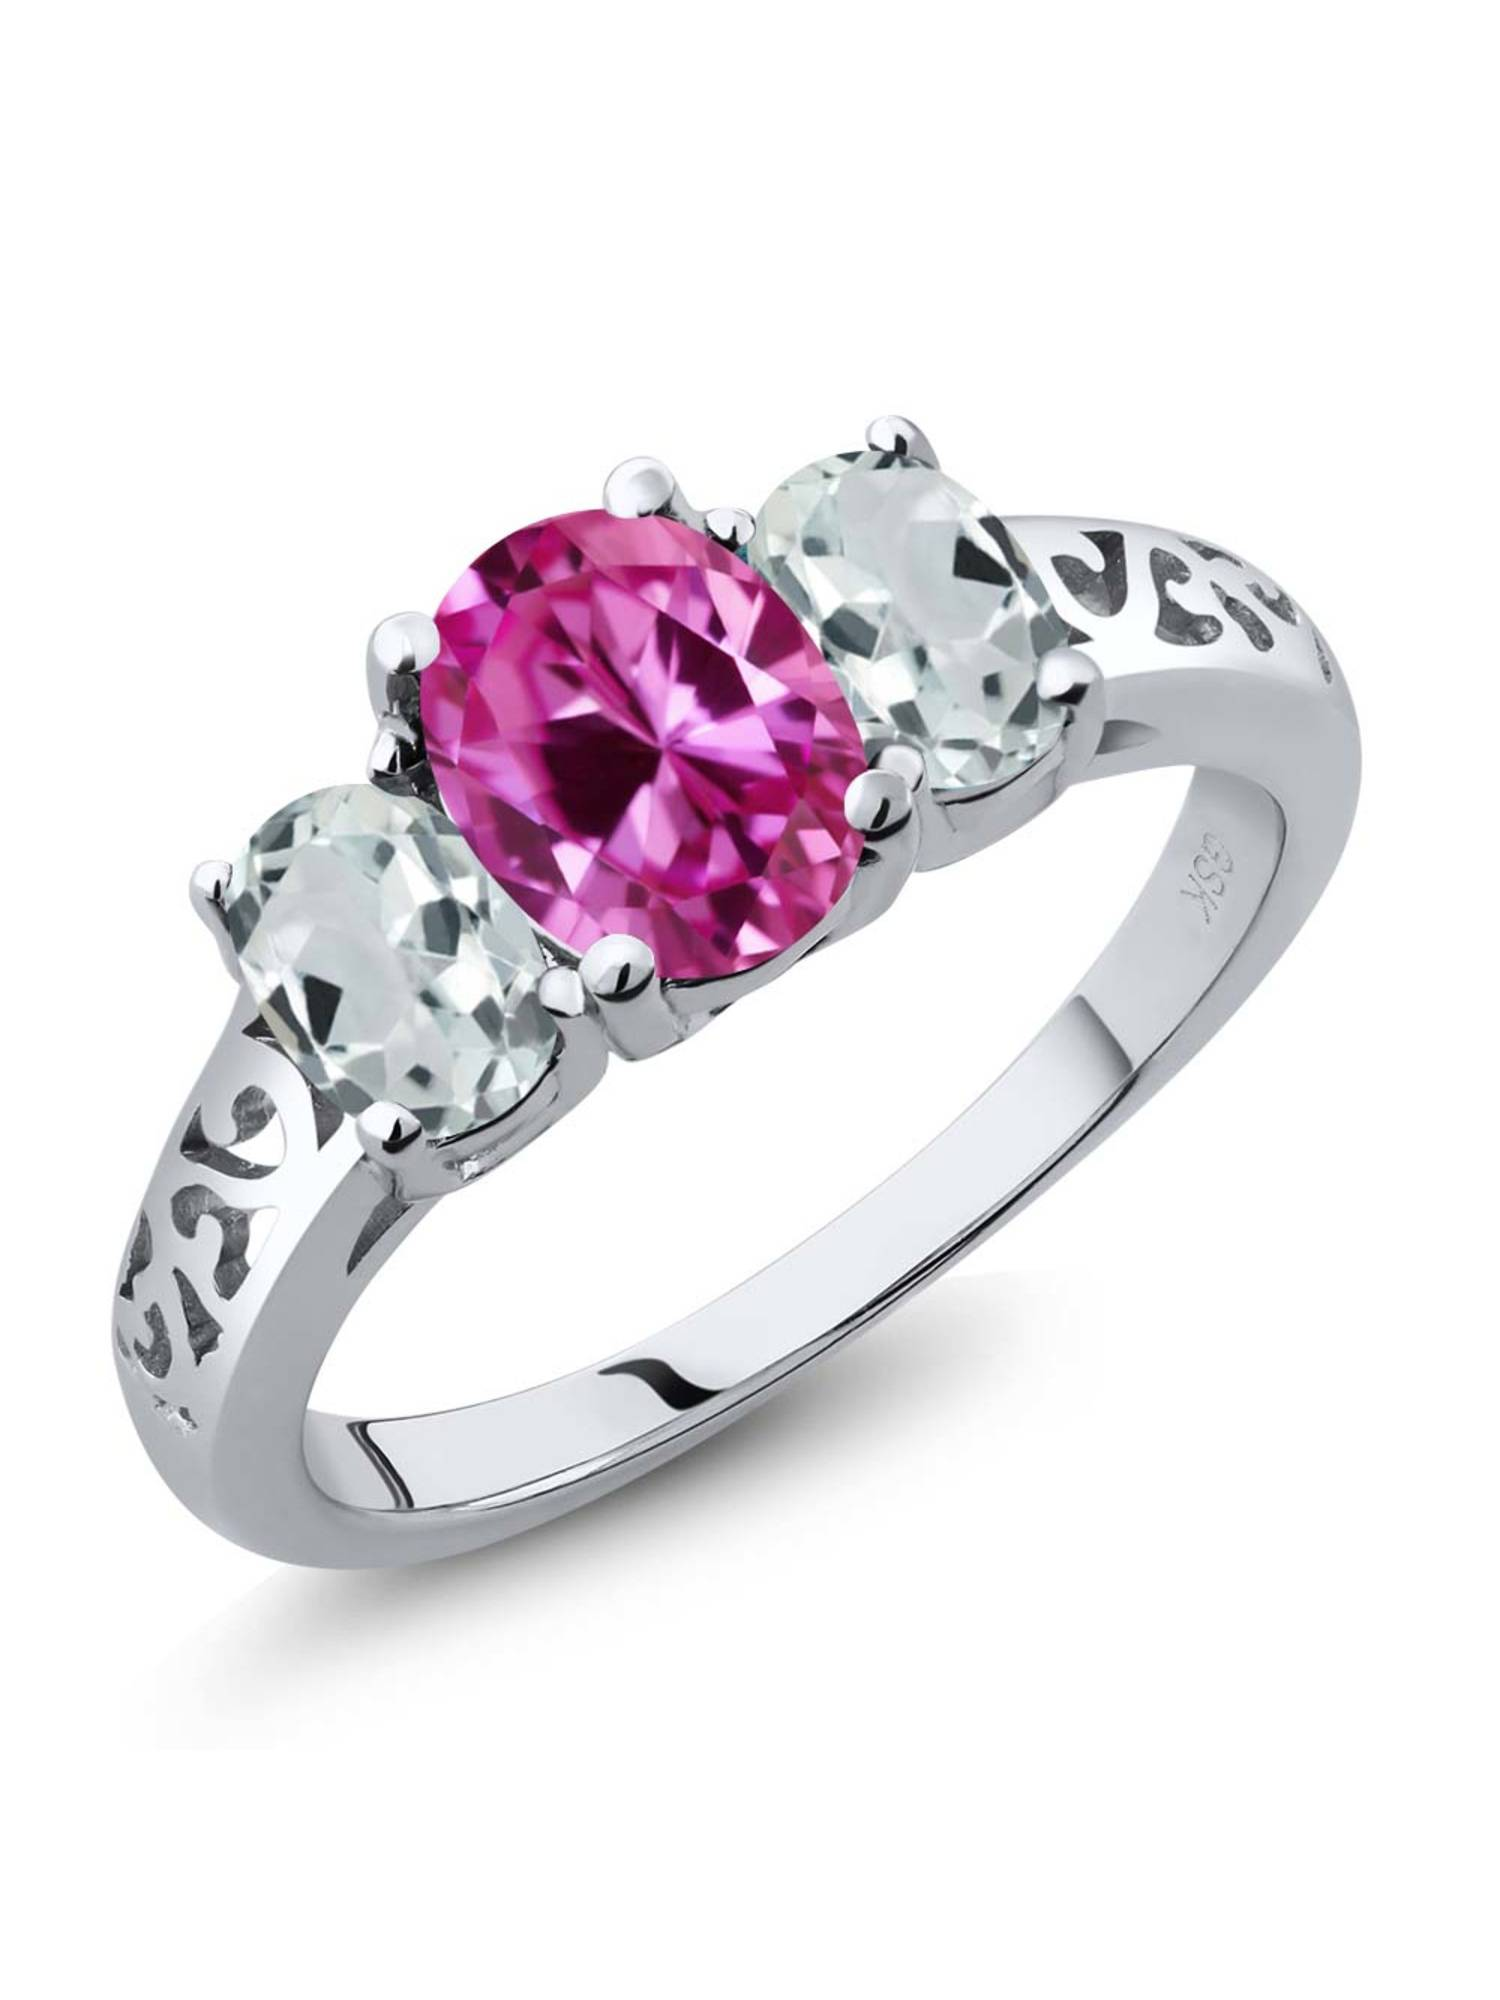 2.51 Ct Oval Pink Created Sapphire Sky Blue Aquamarine 925 Sterling Silver 3-Stone Ring by